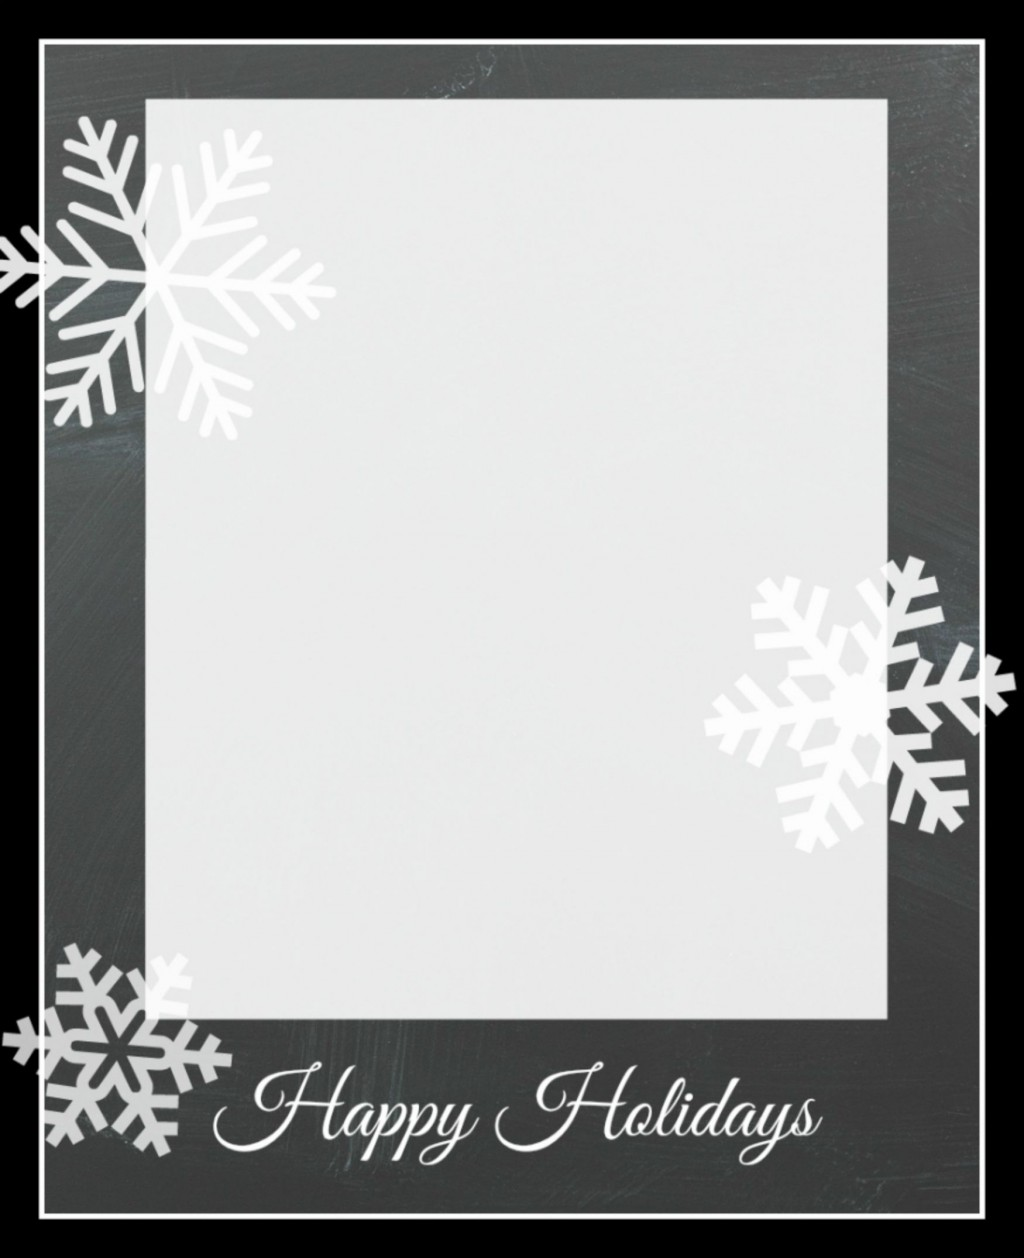 009 Unforgettable Free Download Holiday Card Template Photo Large